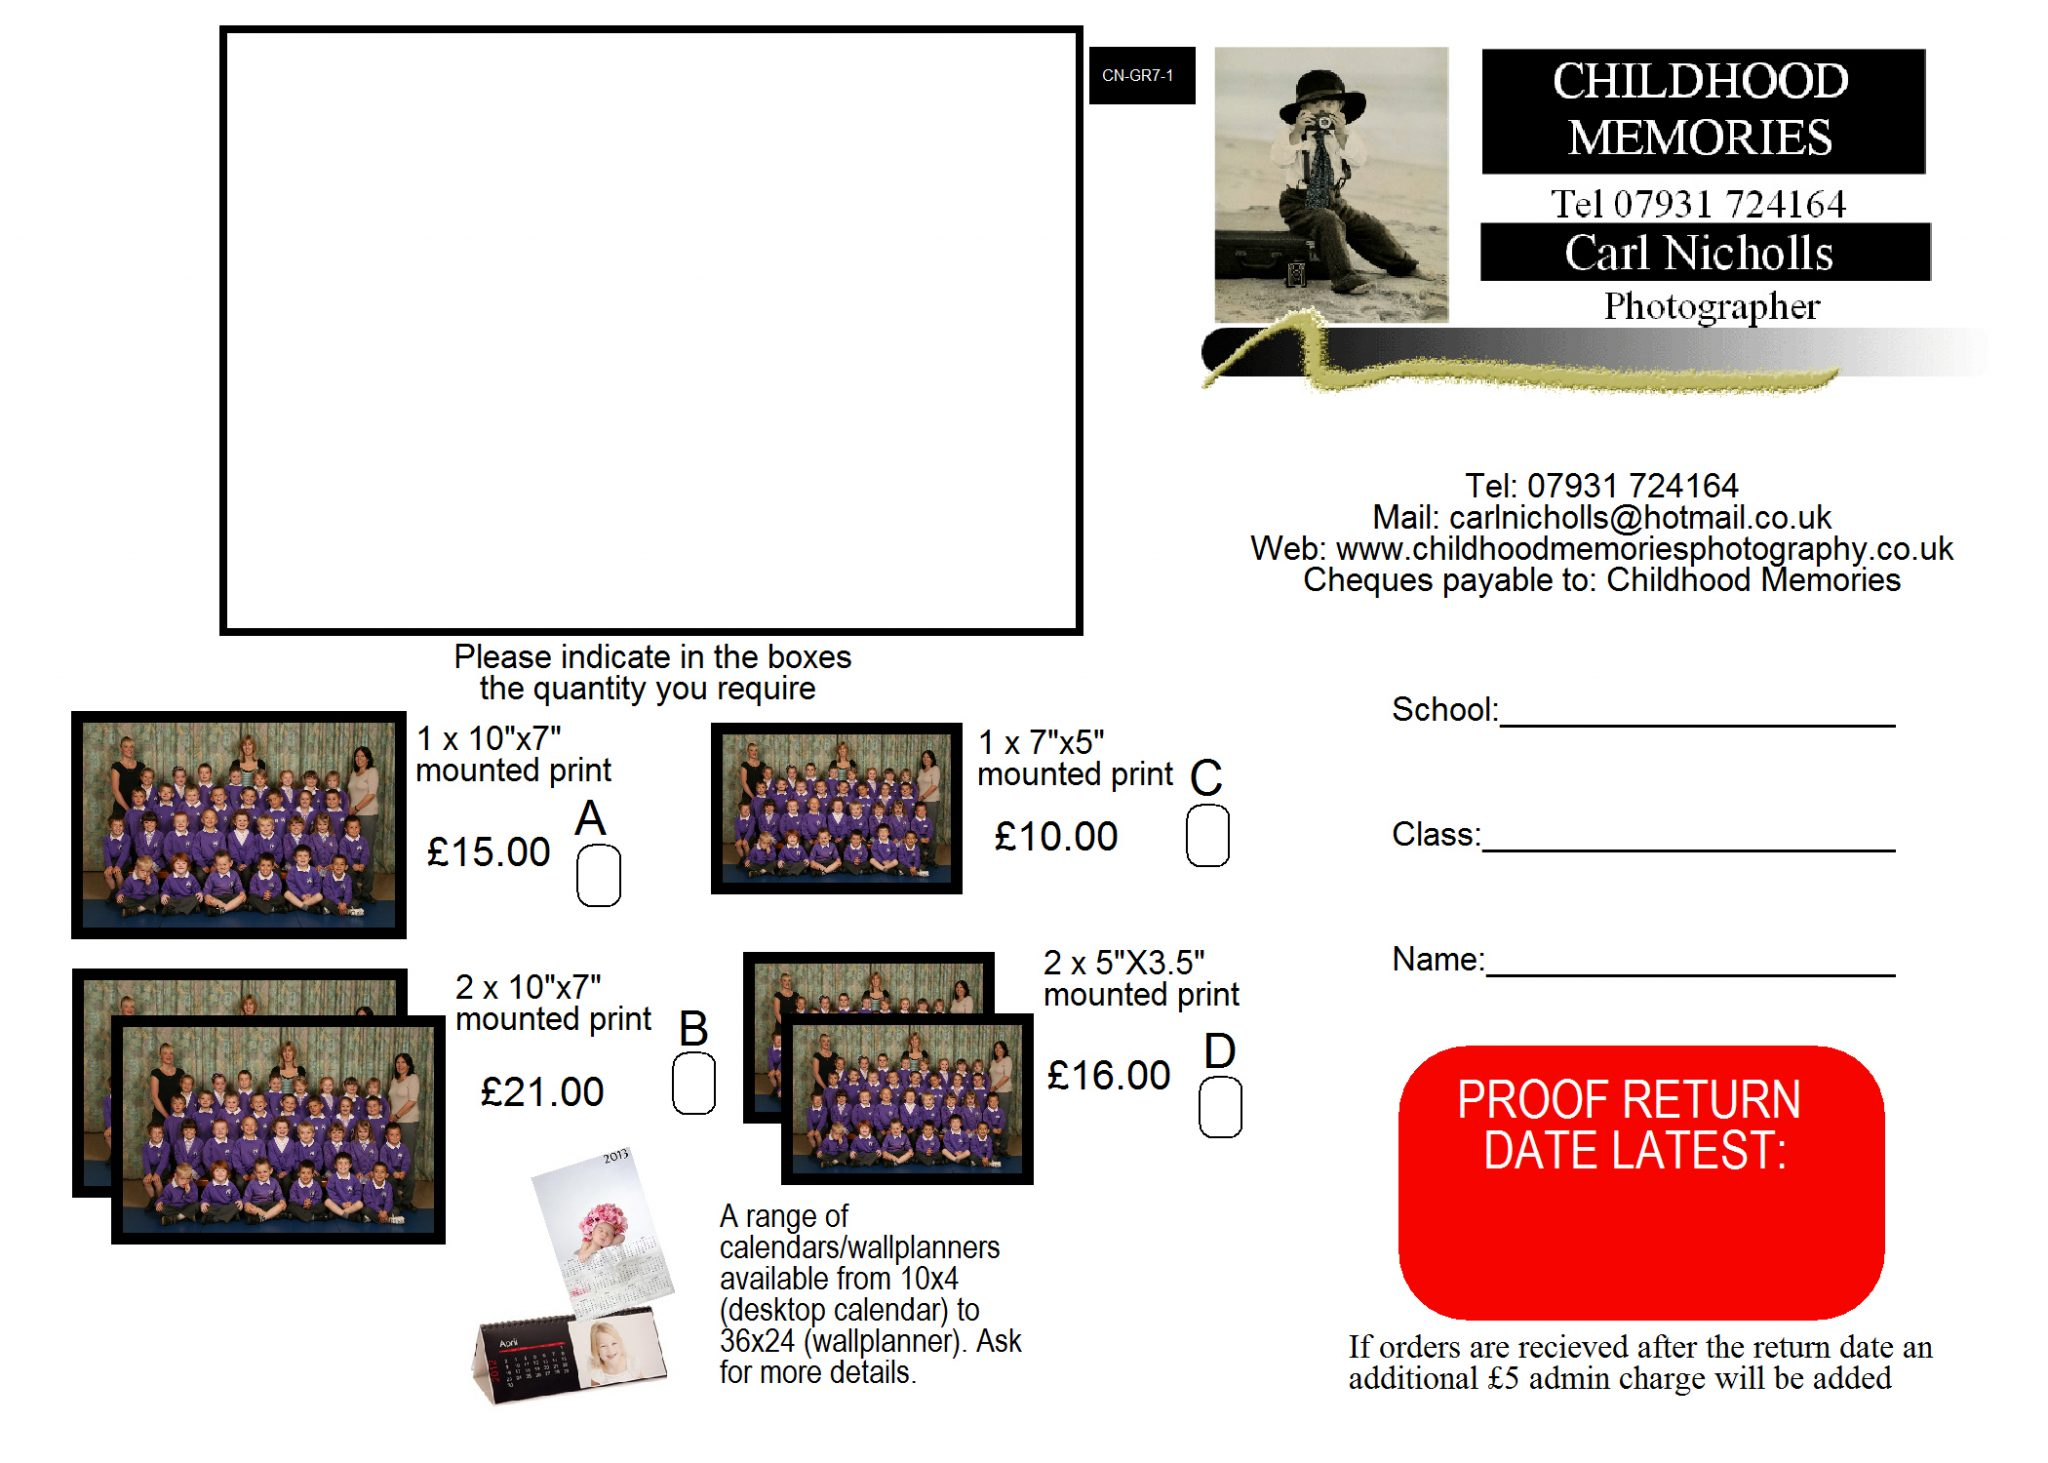 Form for ordering class photos